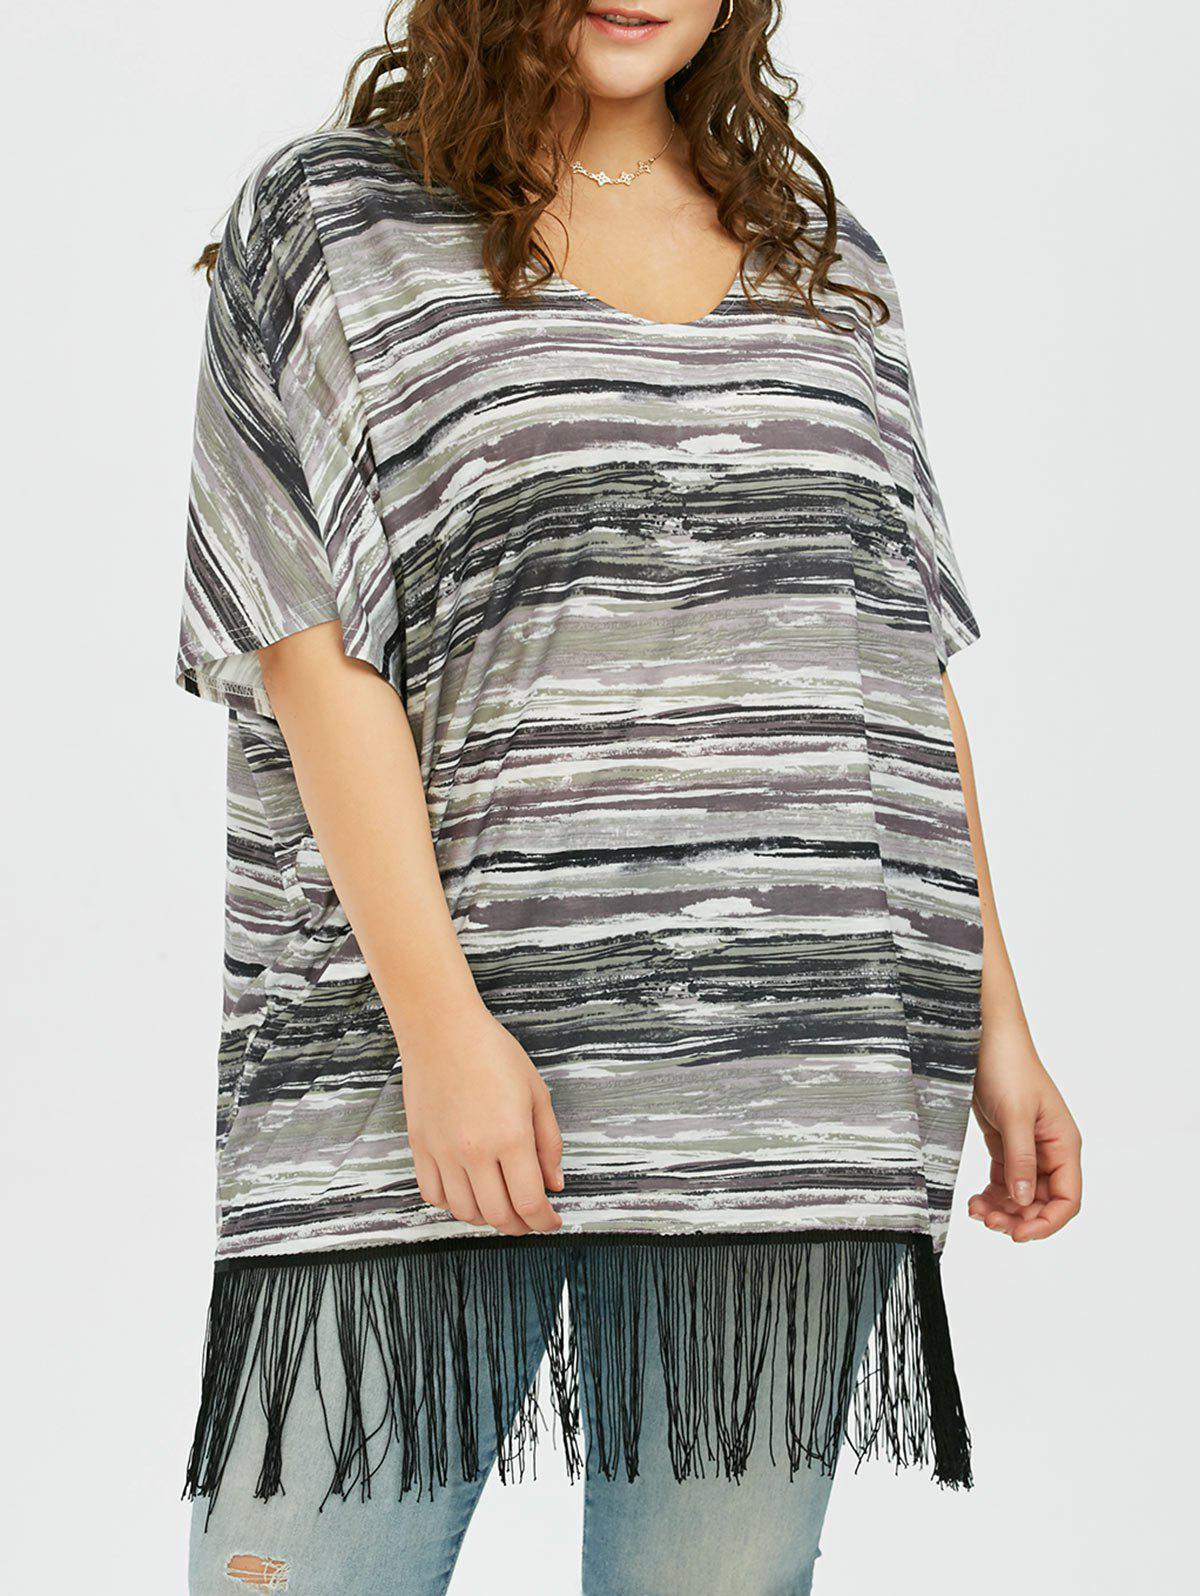 Plus Size Striped Fringed T-shirt - COLORMIX XL